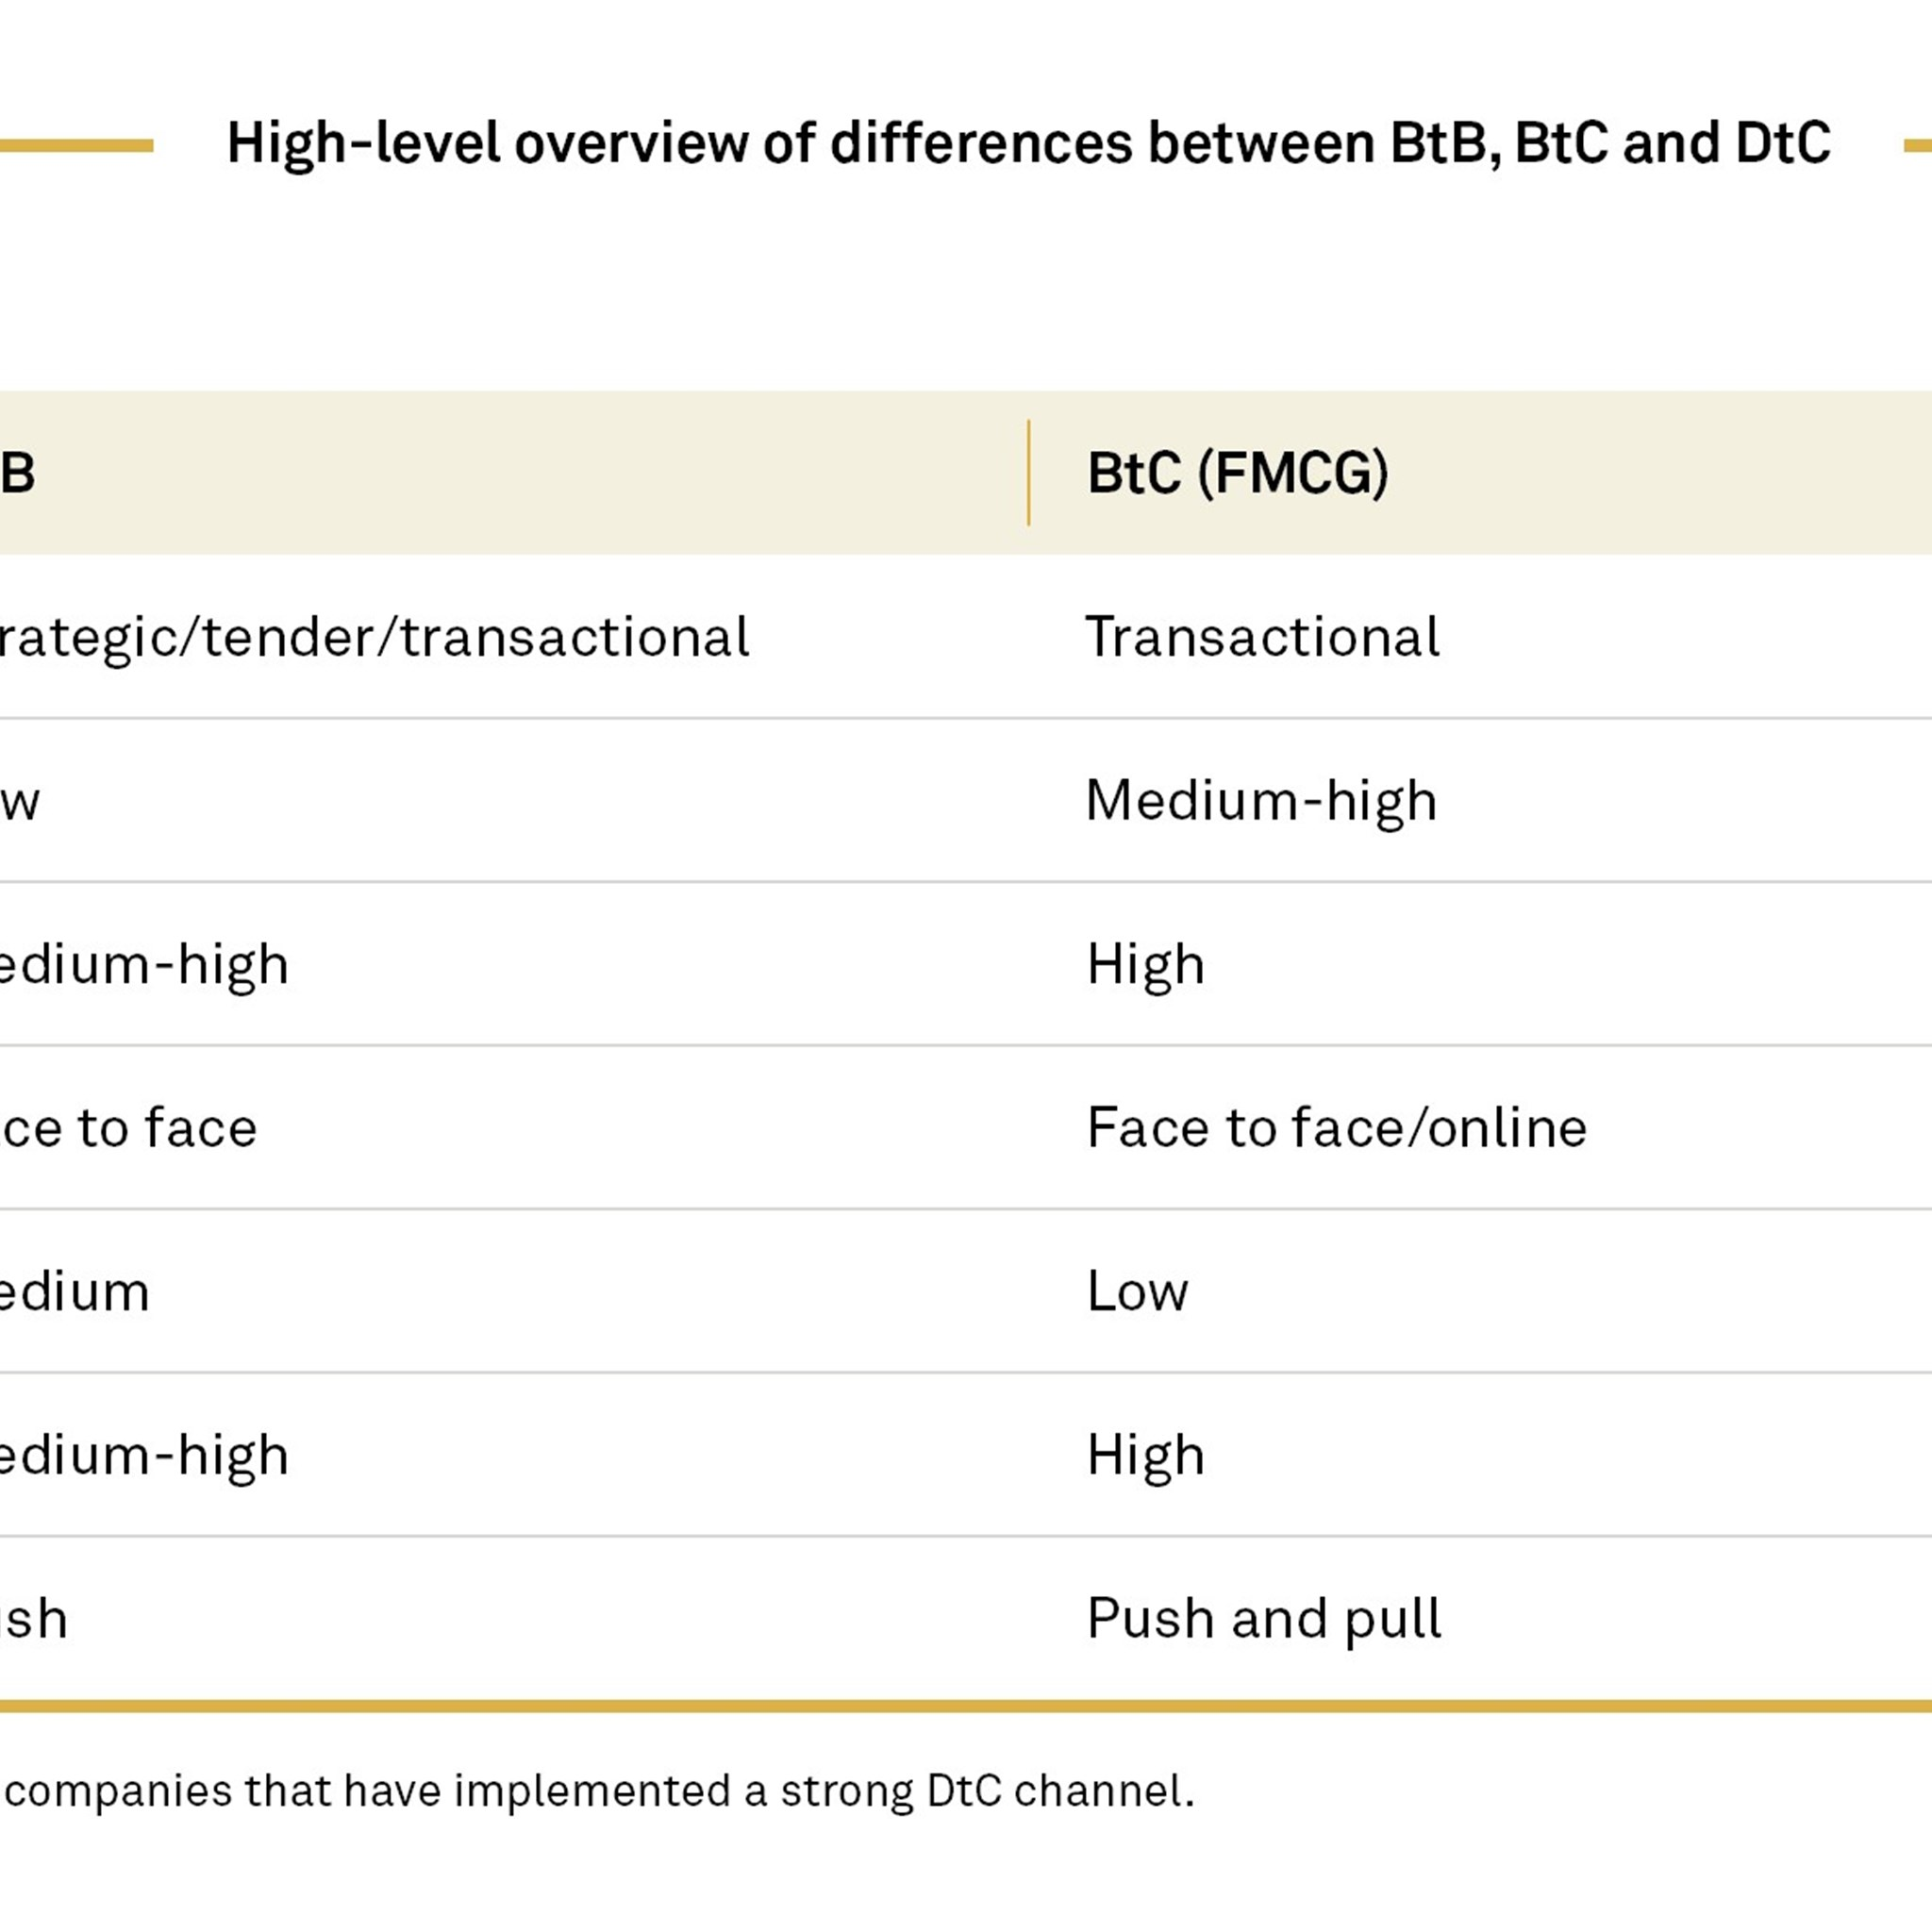 High-level overview of differences between BtB, BtC and DtC